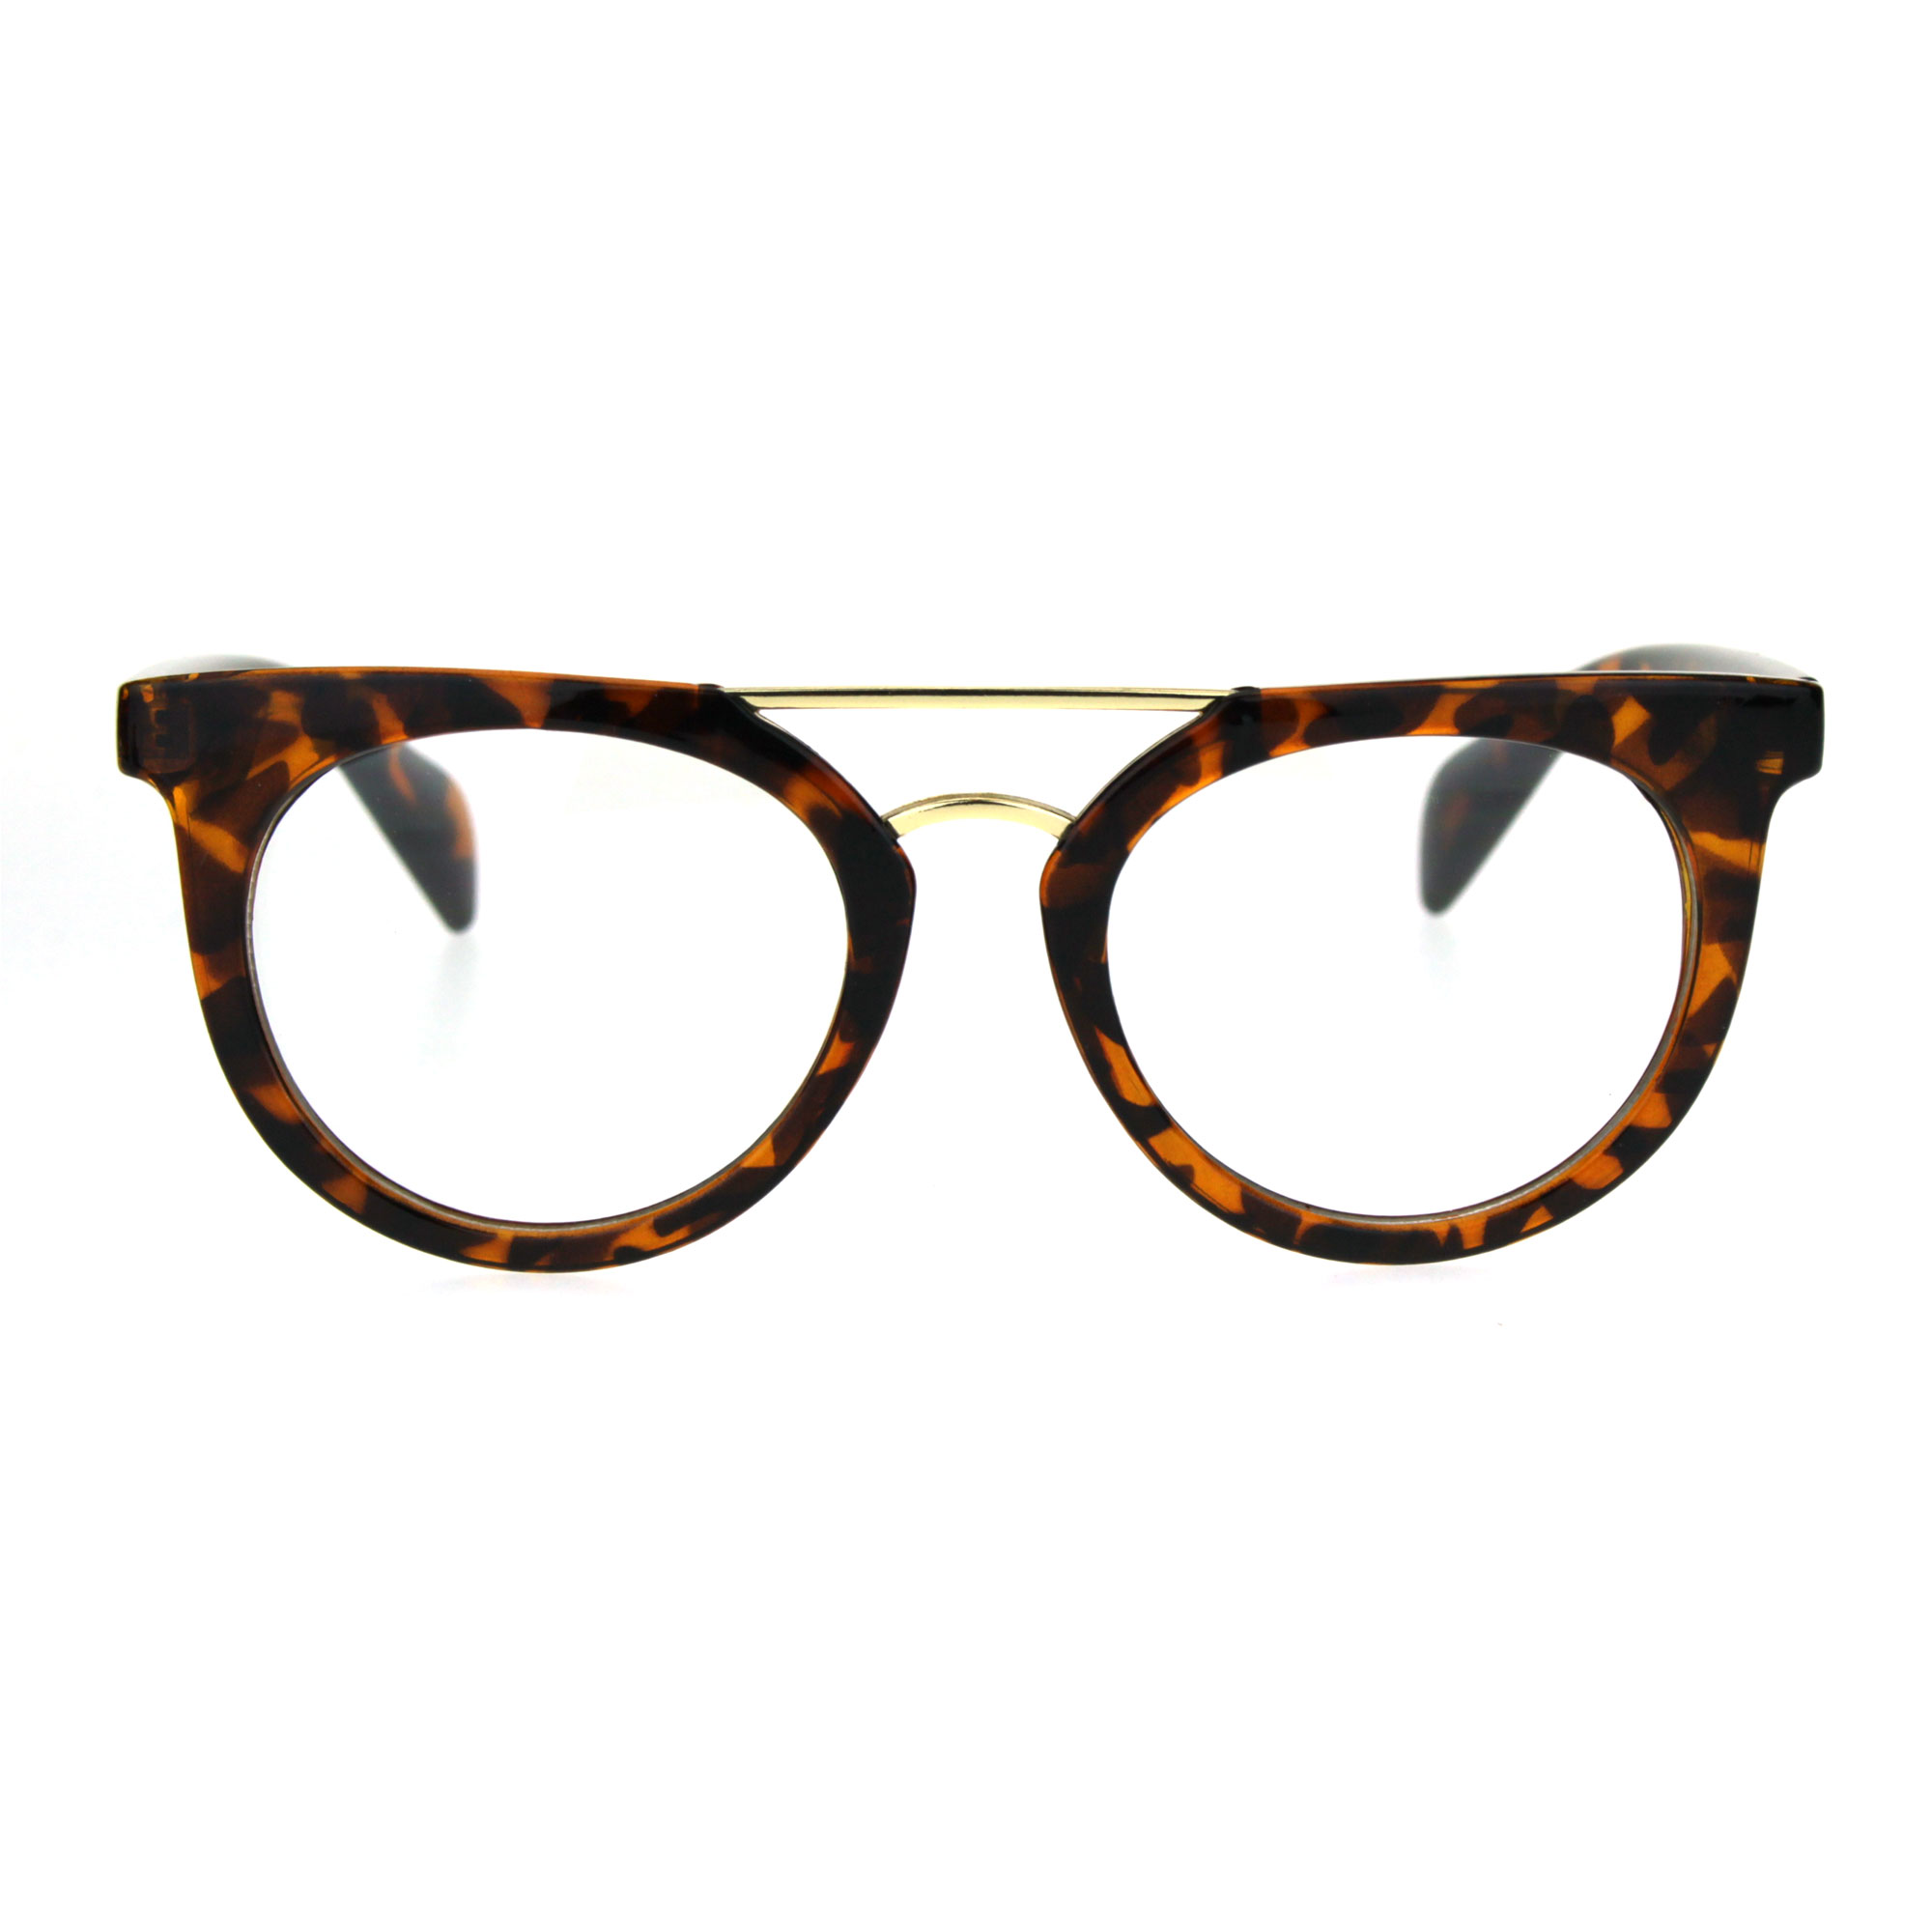 Vintage Style Flat Top Nerdy Metal Bridge Horn Rim Clear Lens Glasses Tortoise